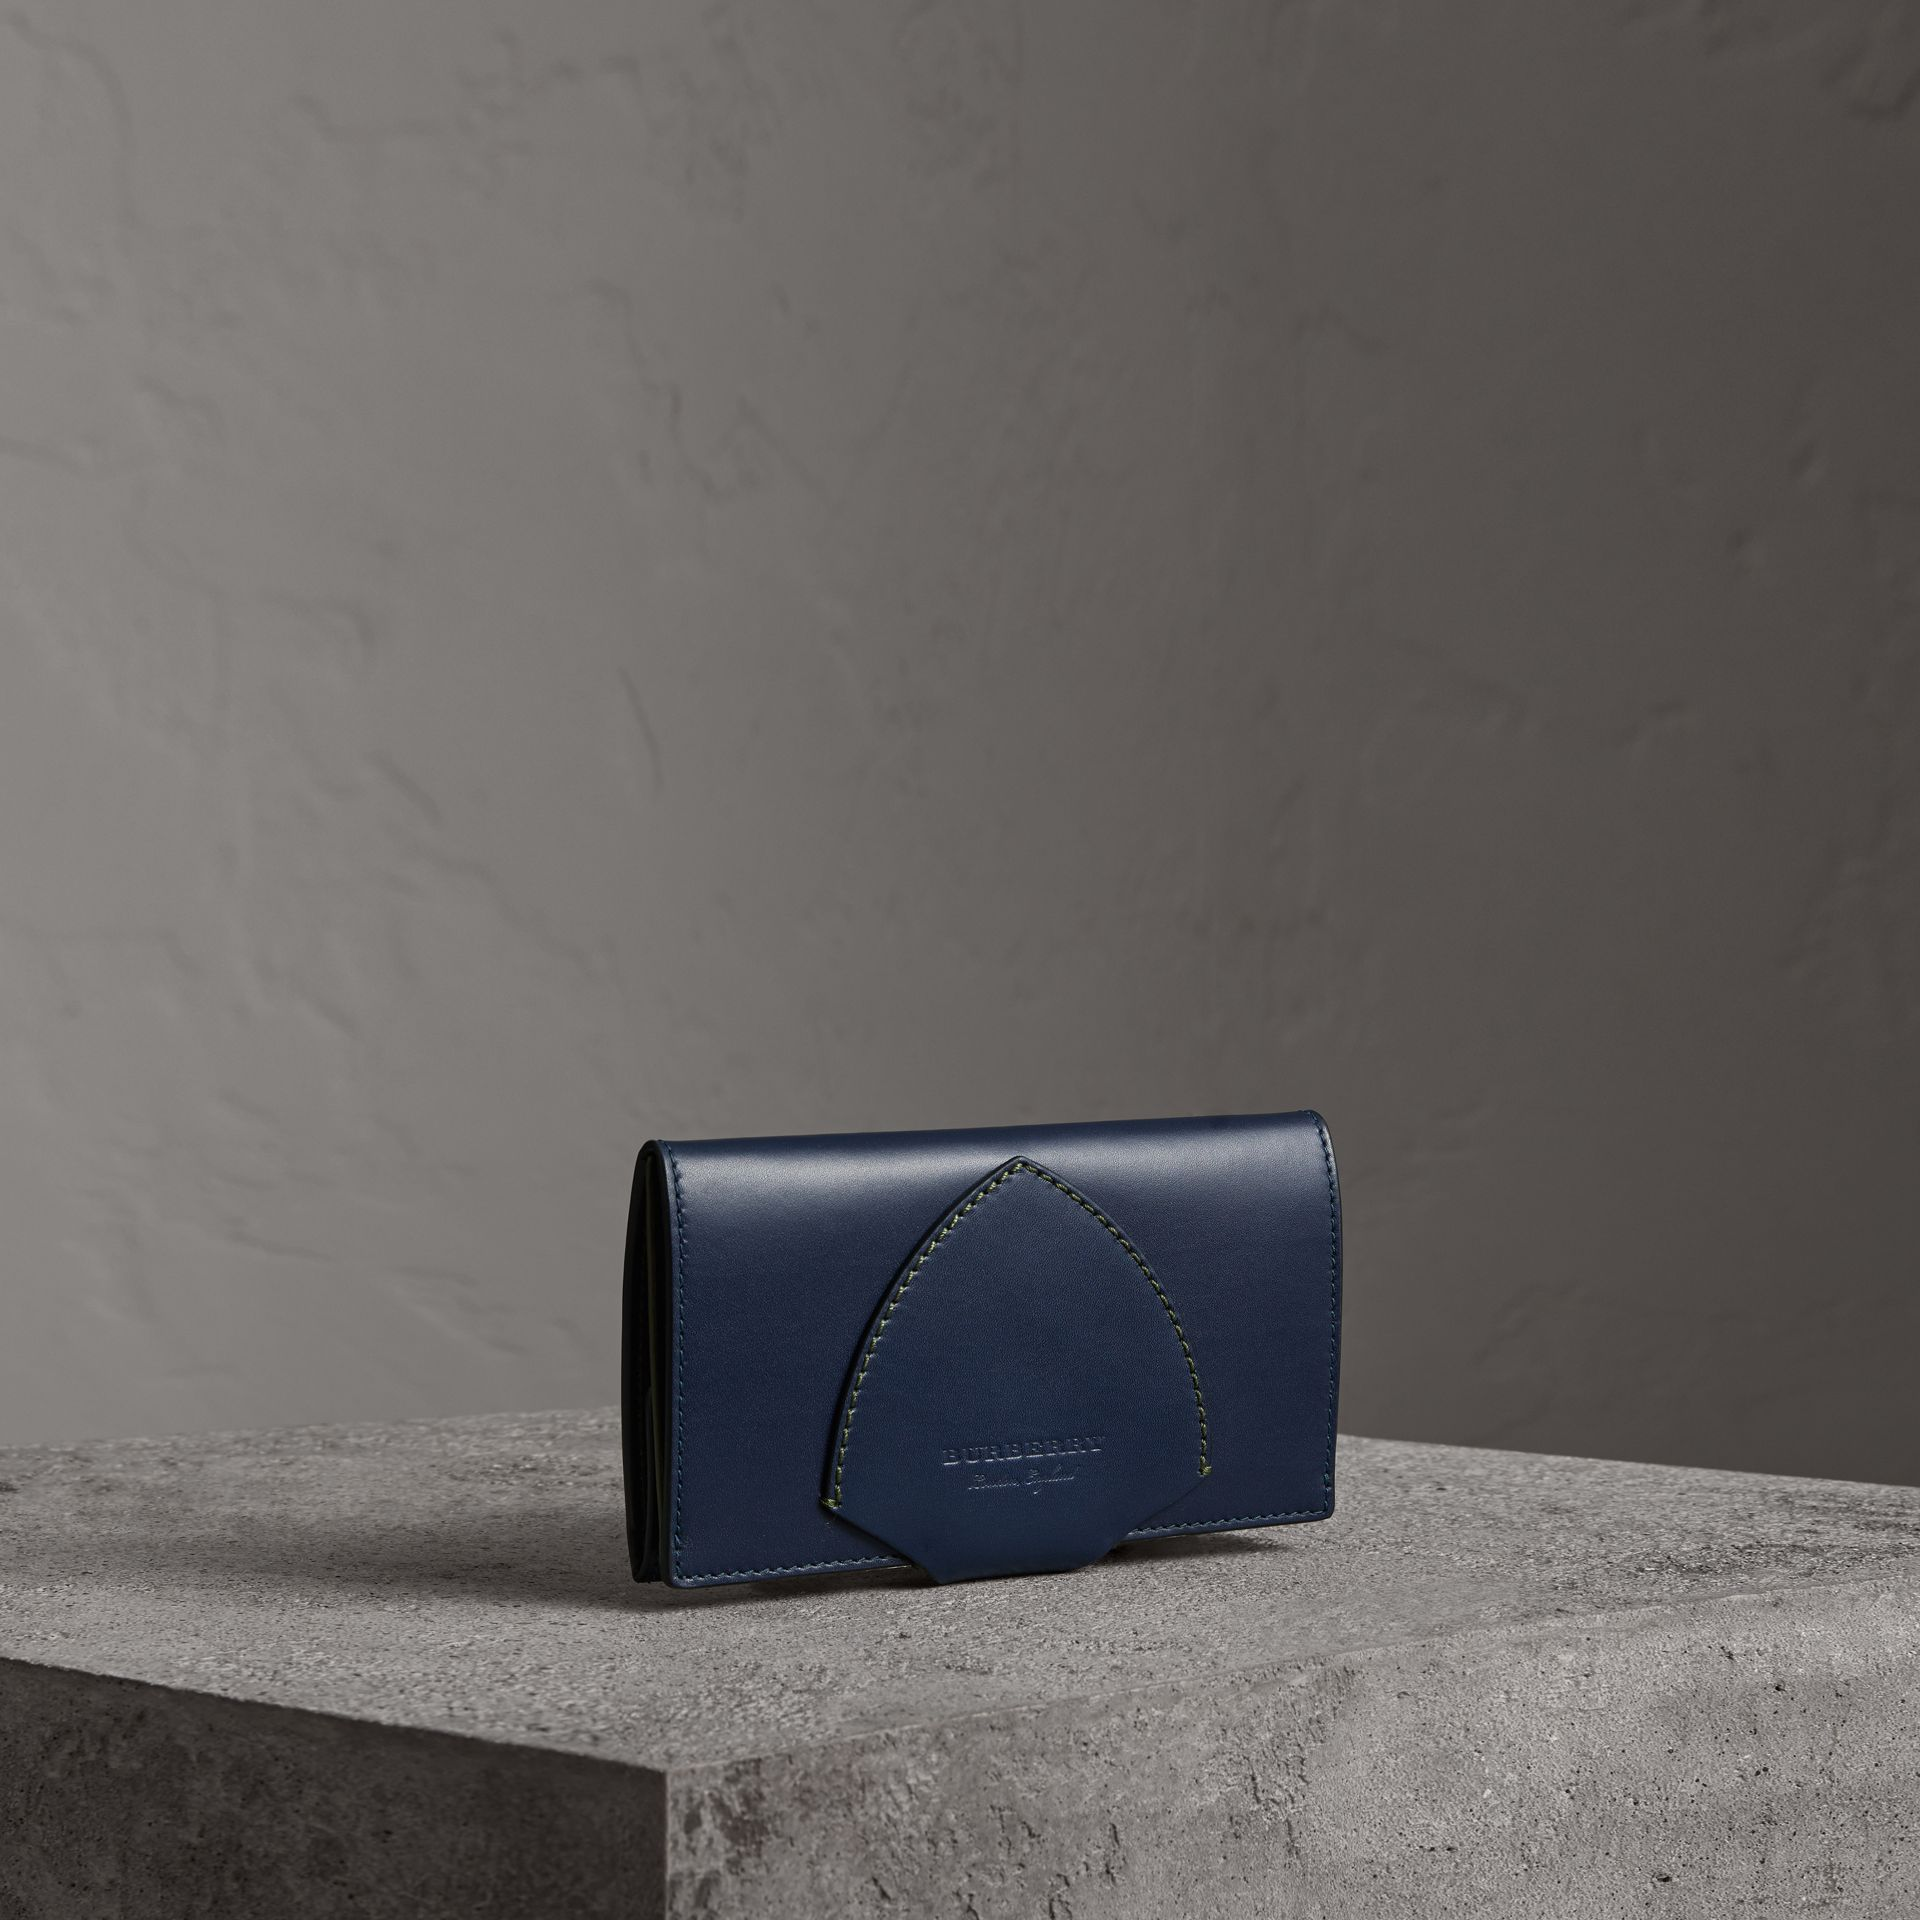 Equestrian Shield Two-tone Leather Continental Wallet in Mid Indigo - Women | Burberry United States - gallery image 0